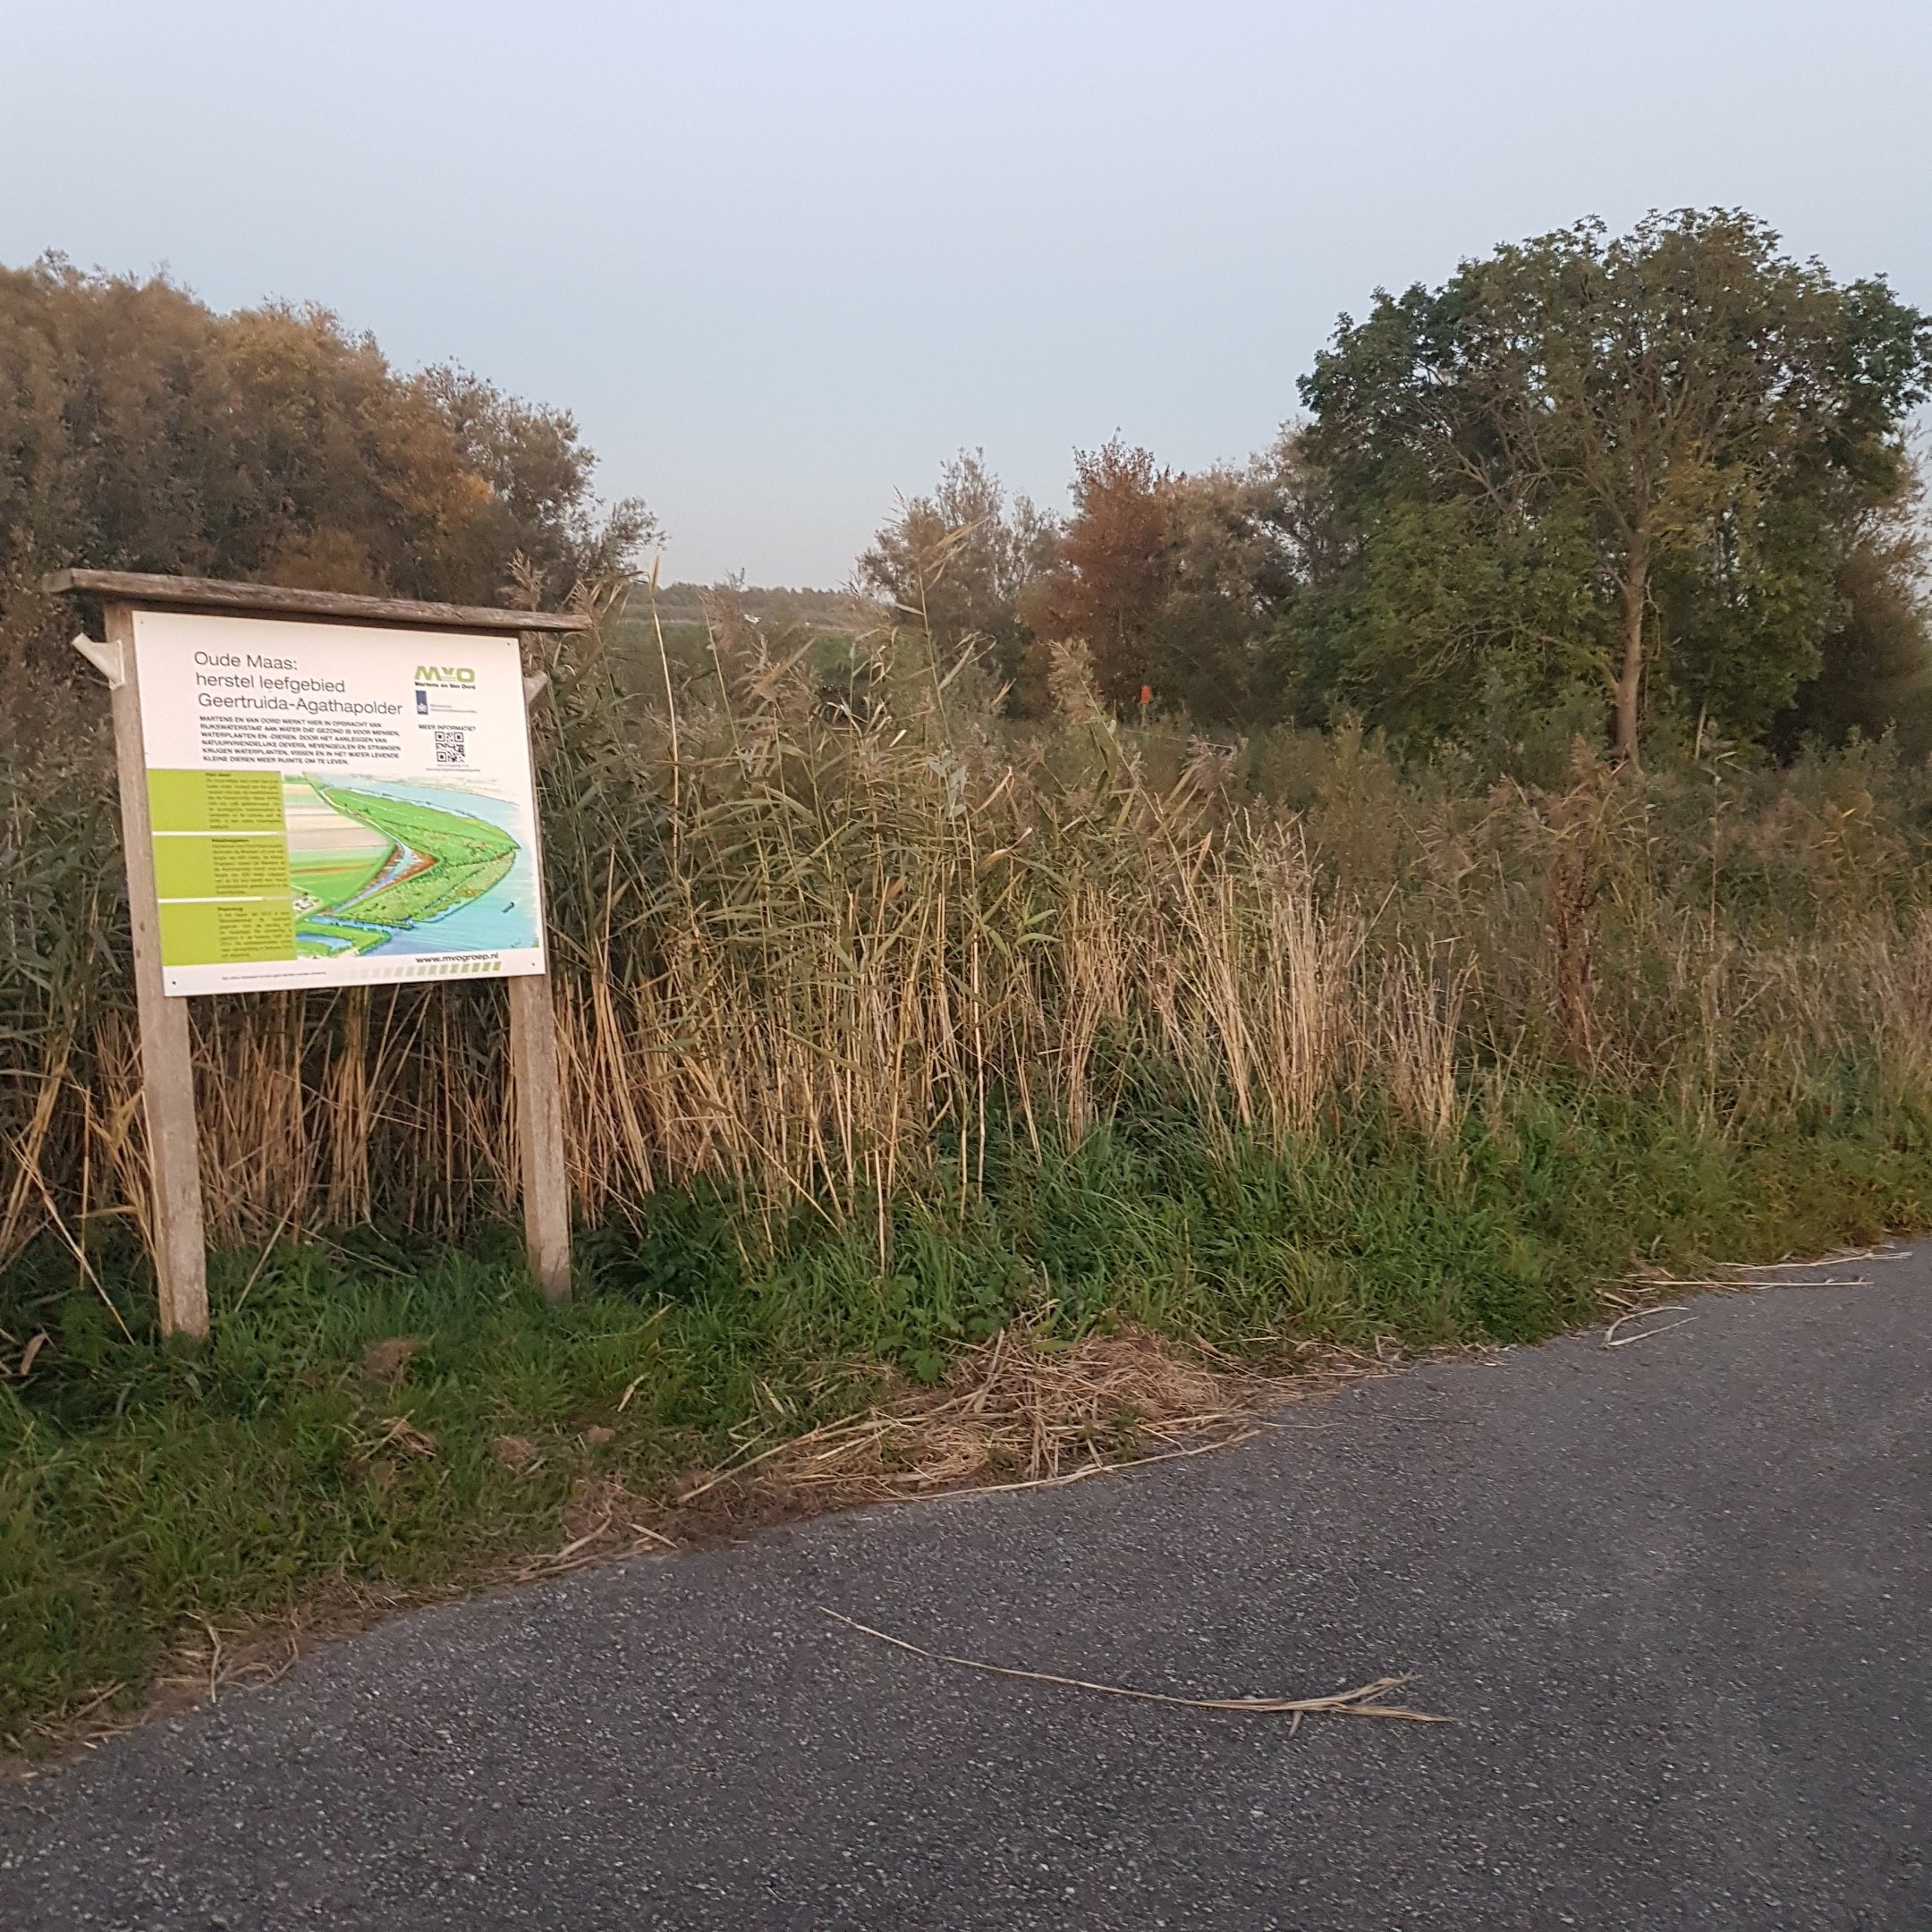 The information board hiding the geocache and the view behind it - itstartswithacoffee.com #geocache #geocaching